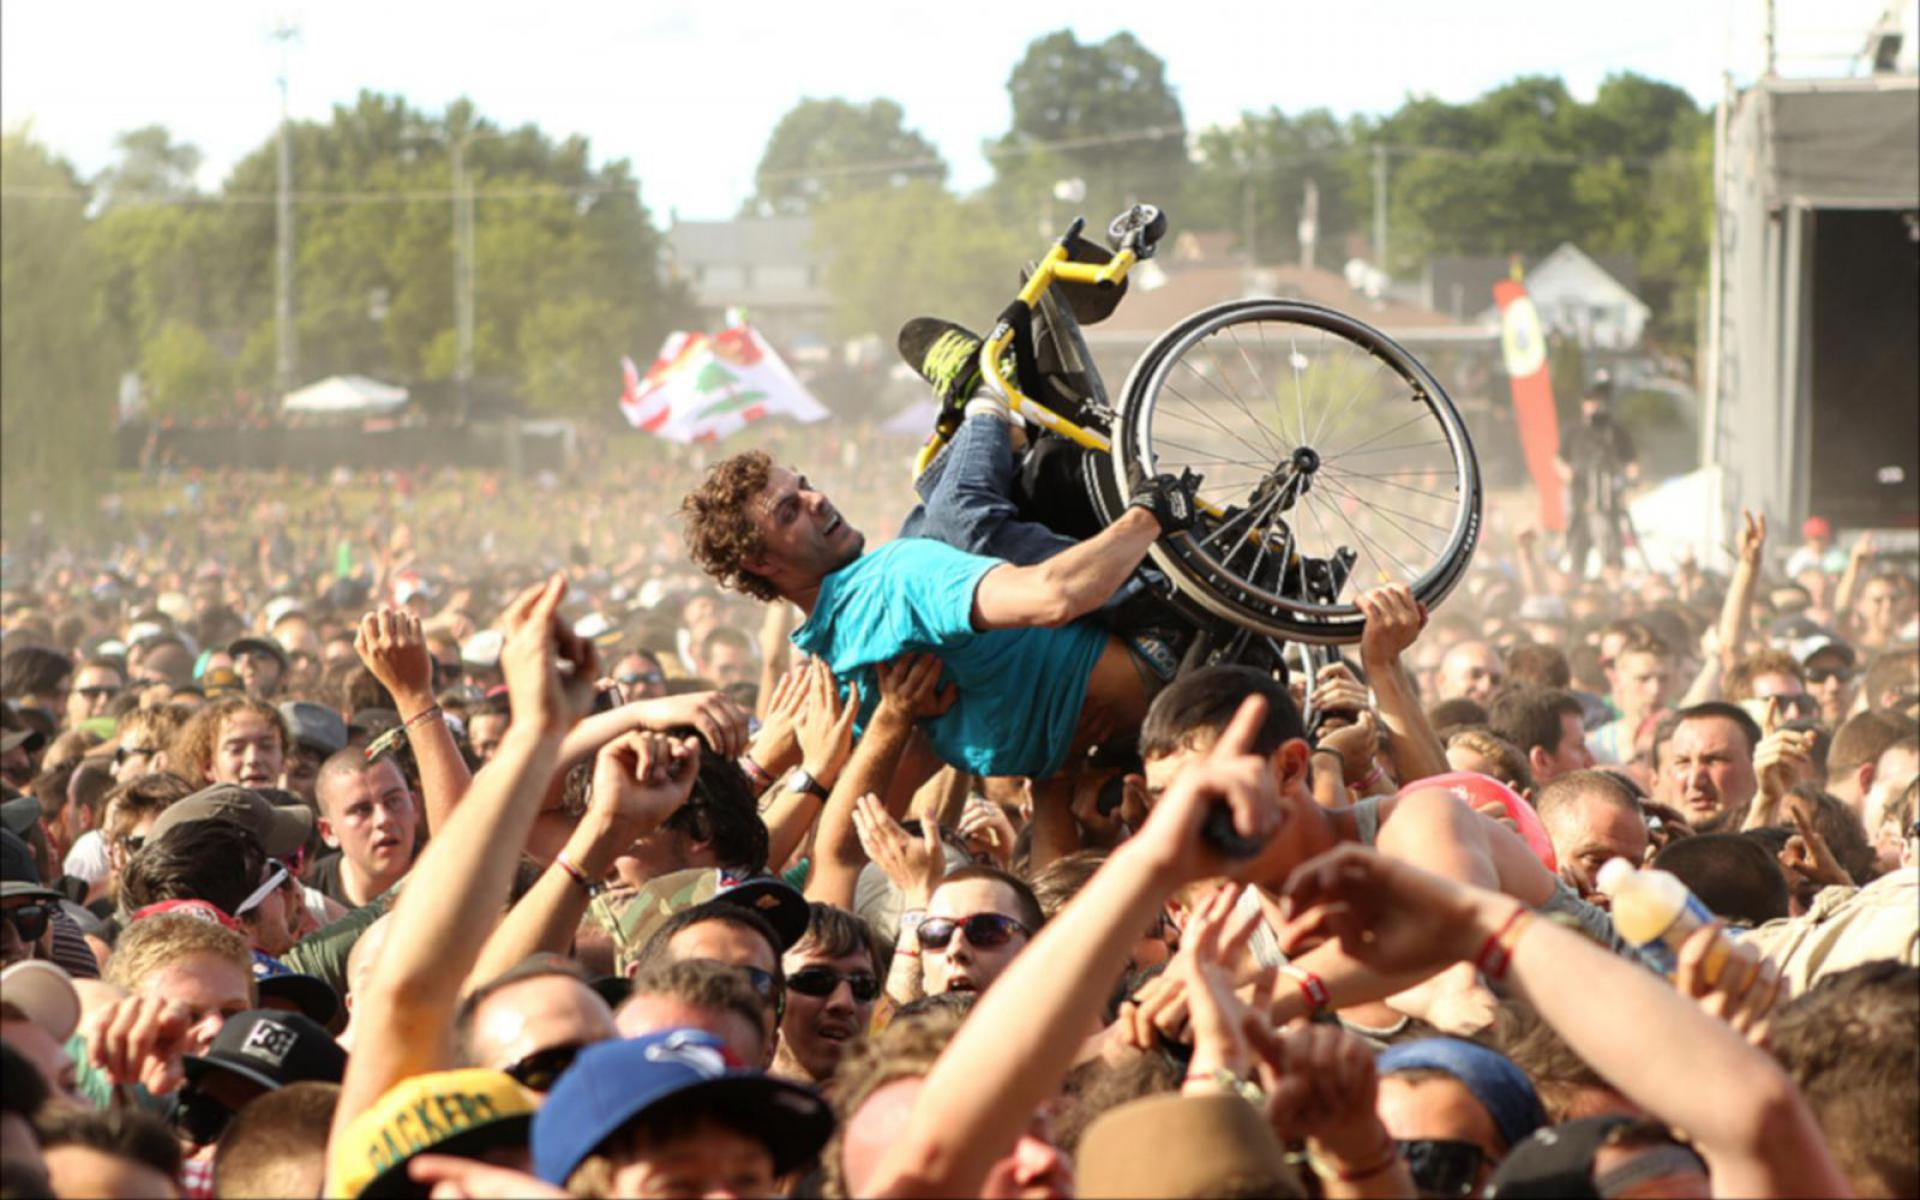 Wheelchair Crowdsurfer